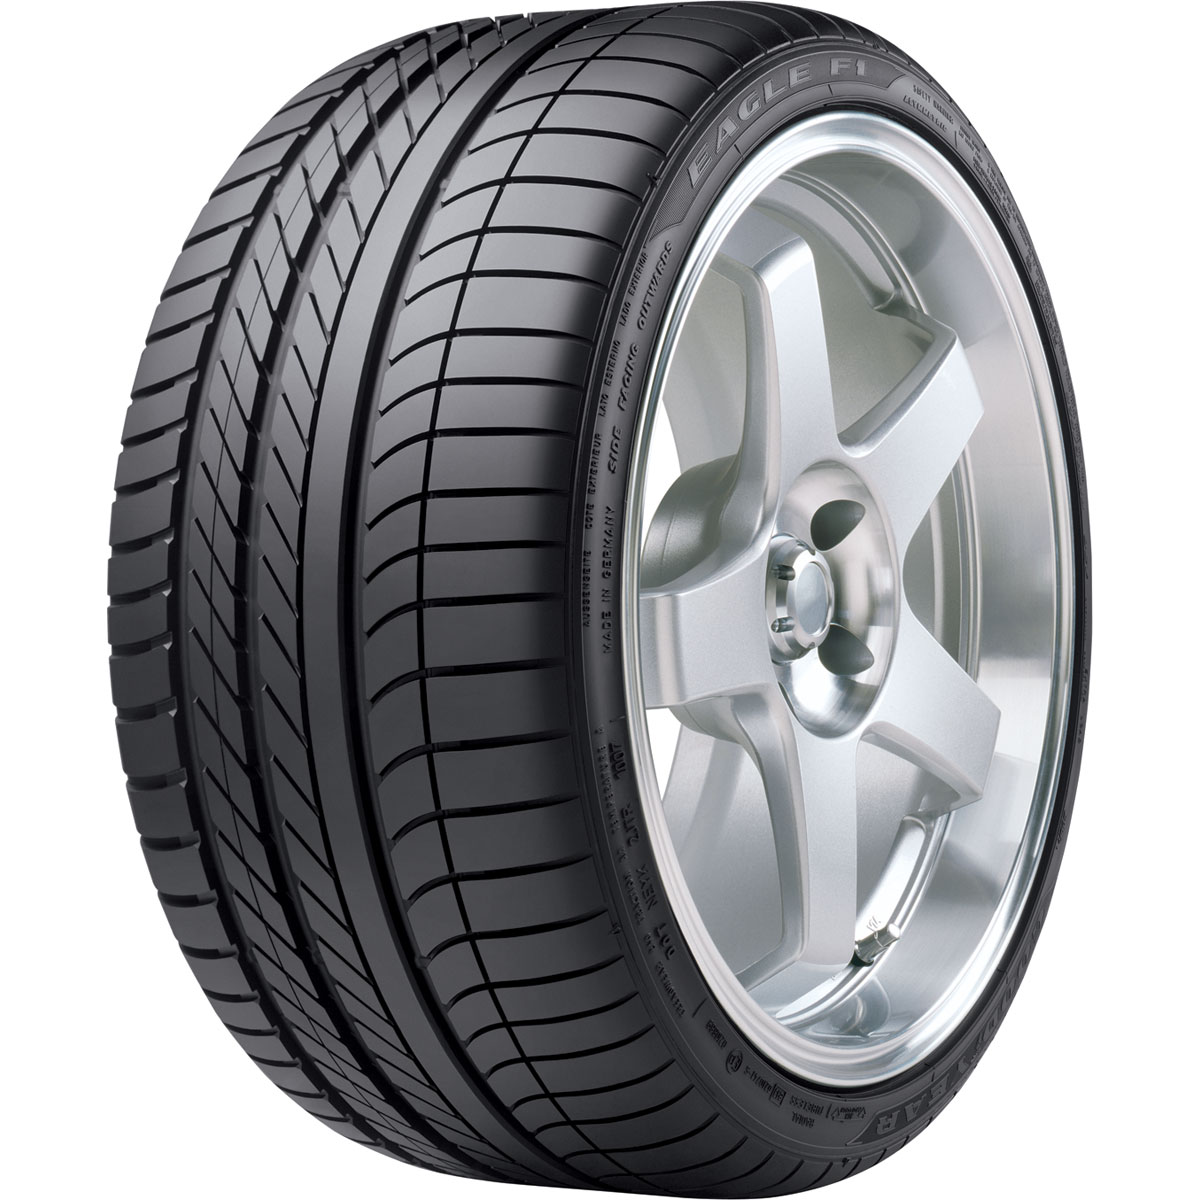 GOODYEAR 255/45 R19 Eagle F1 Asymmetric 104Y AO XL